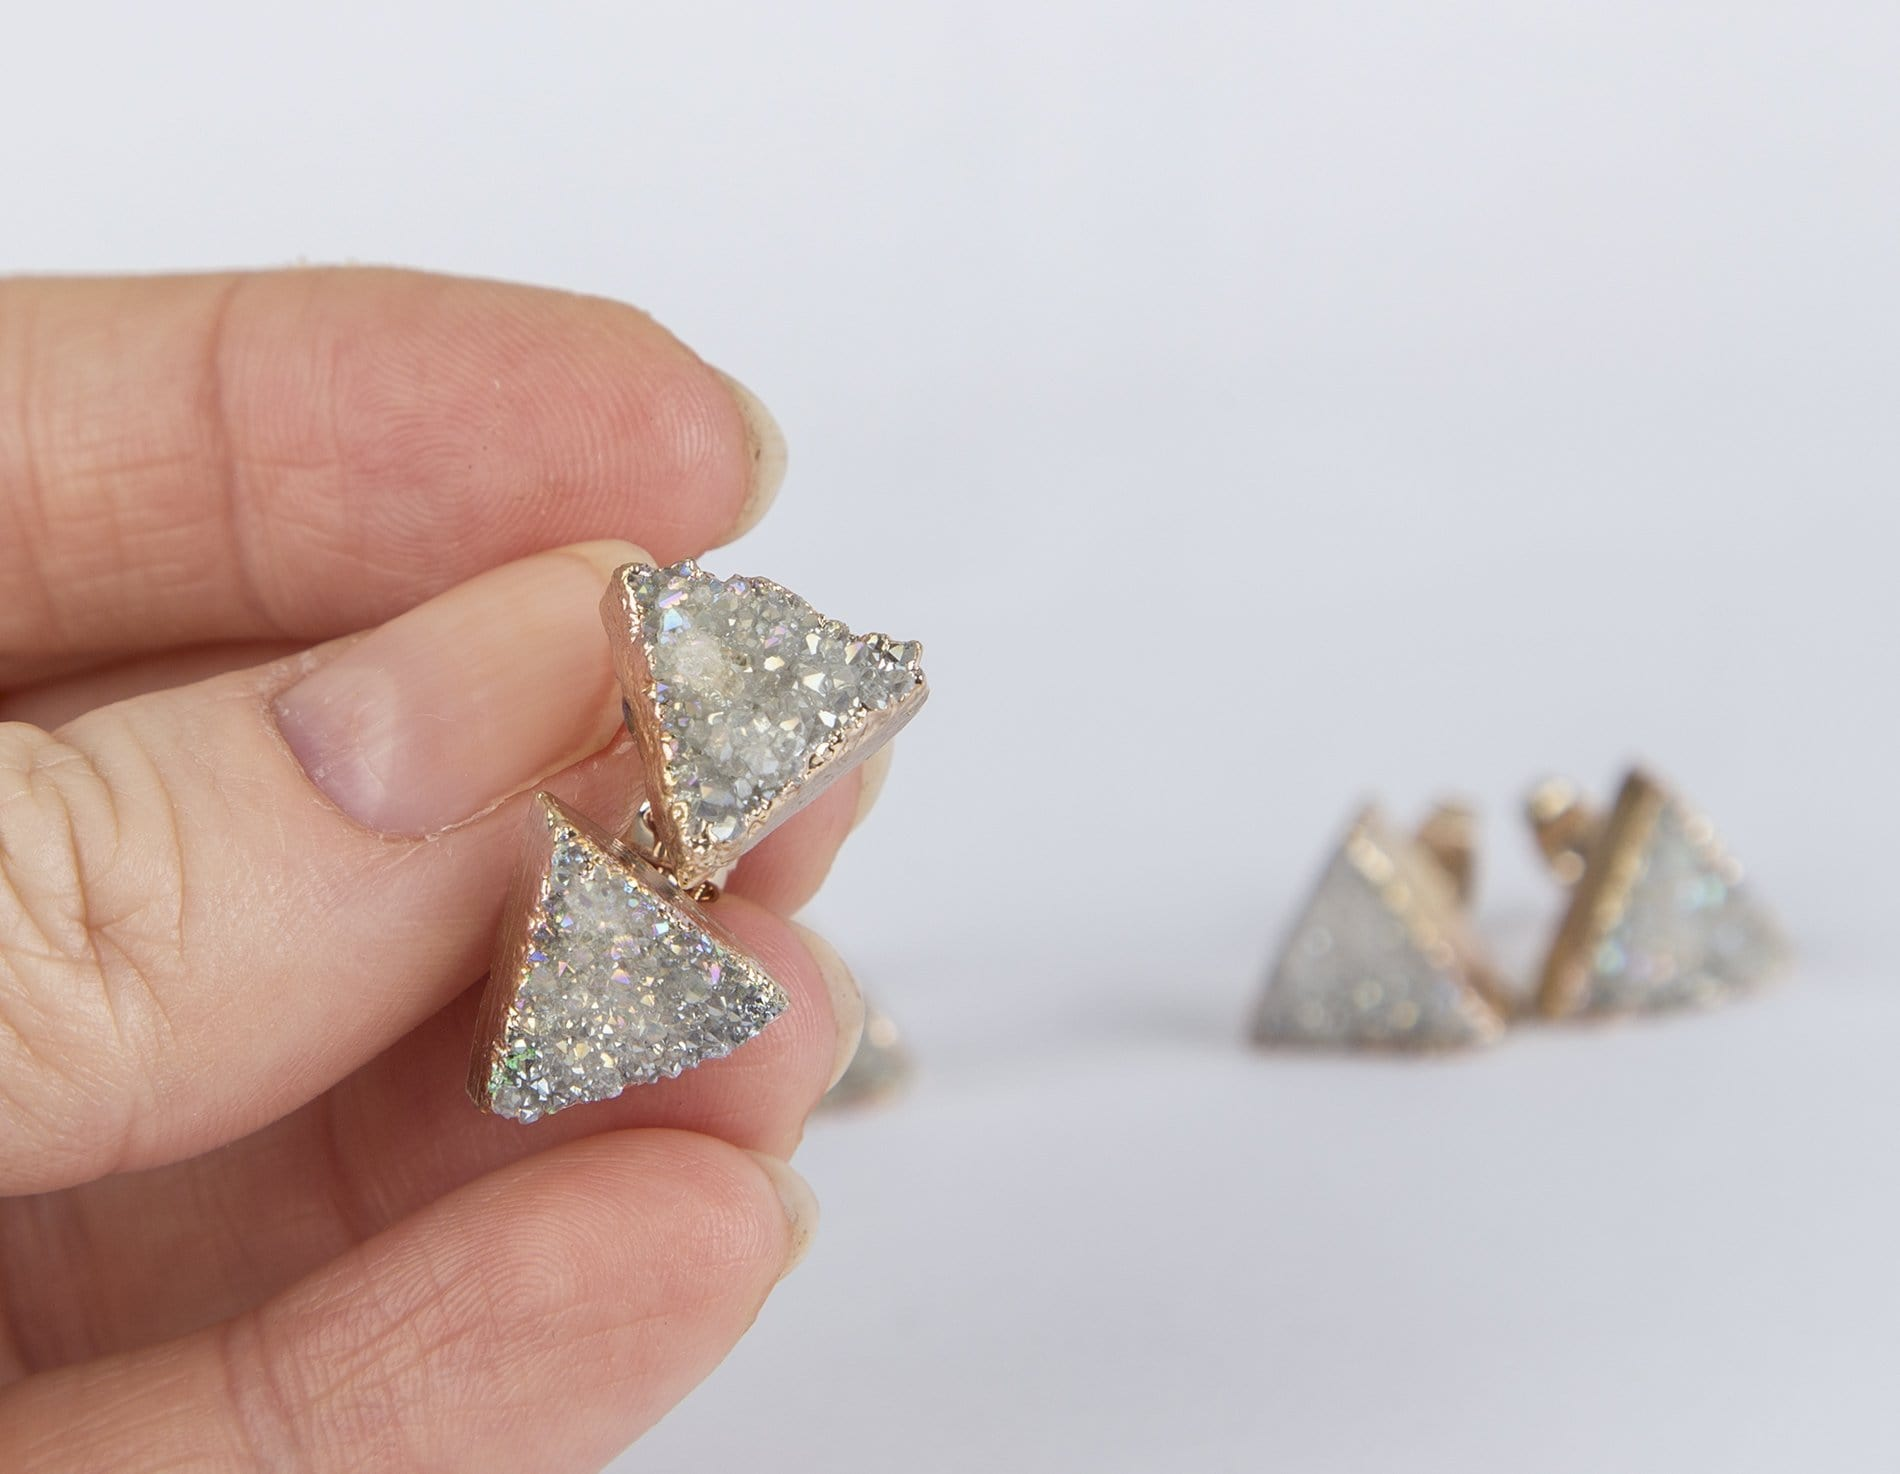 White Triangular Druzy Earrings - SteelJoy!